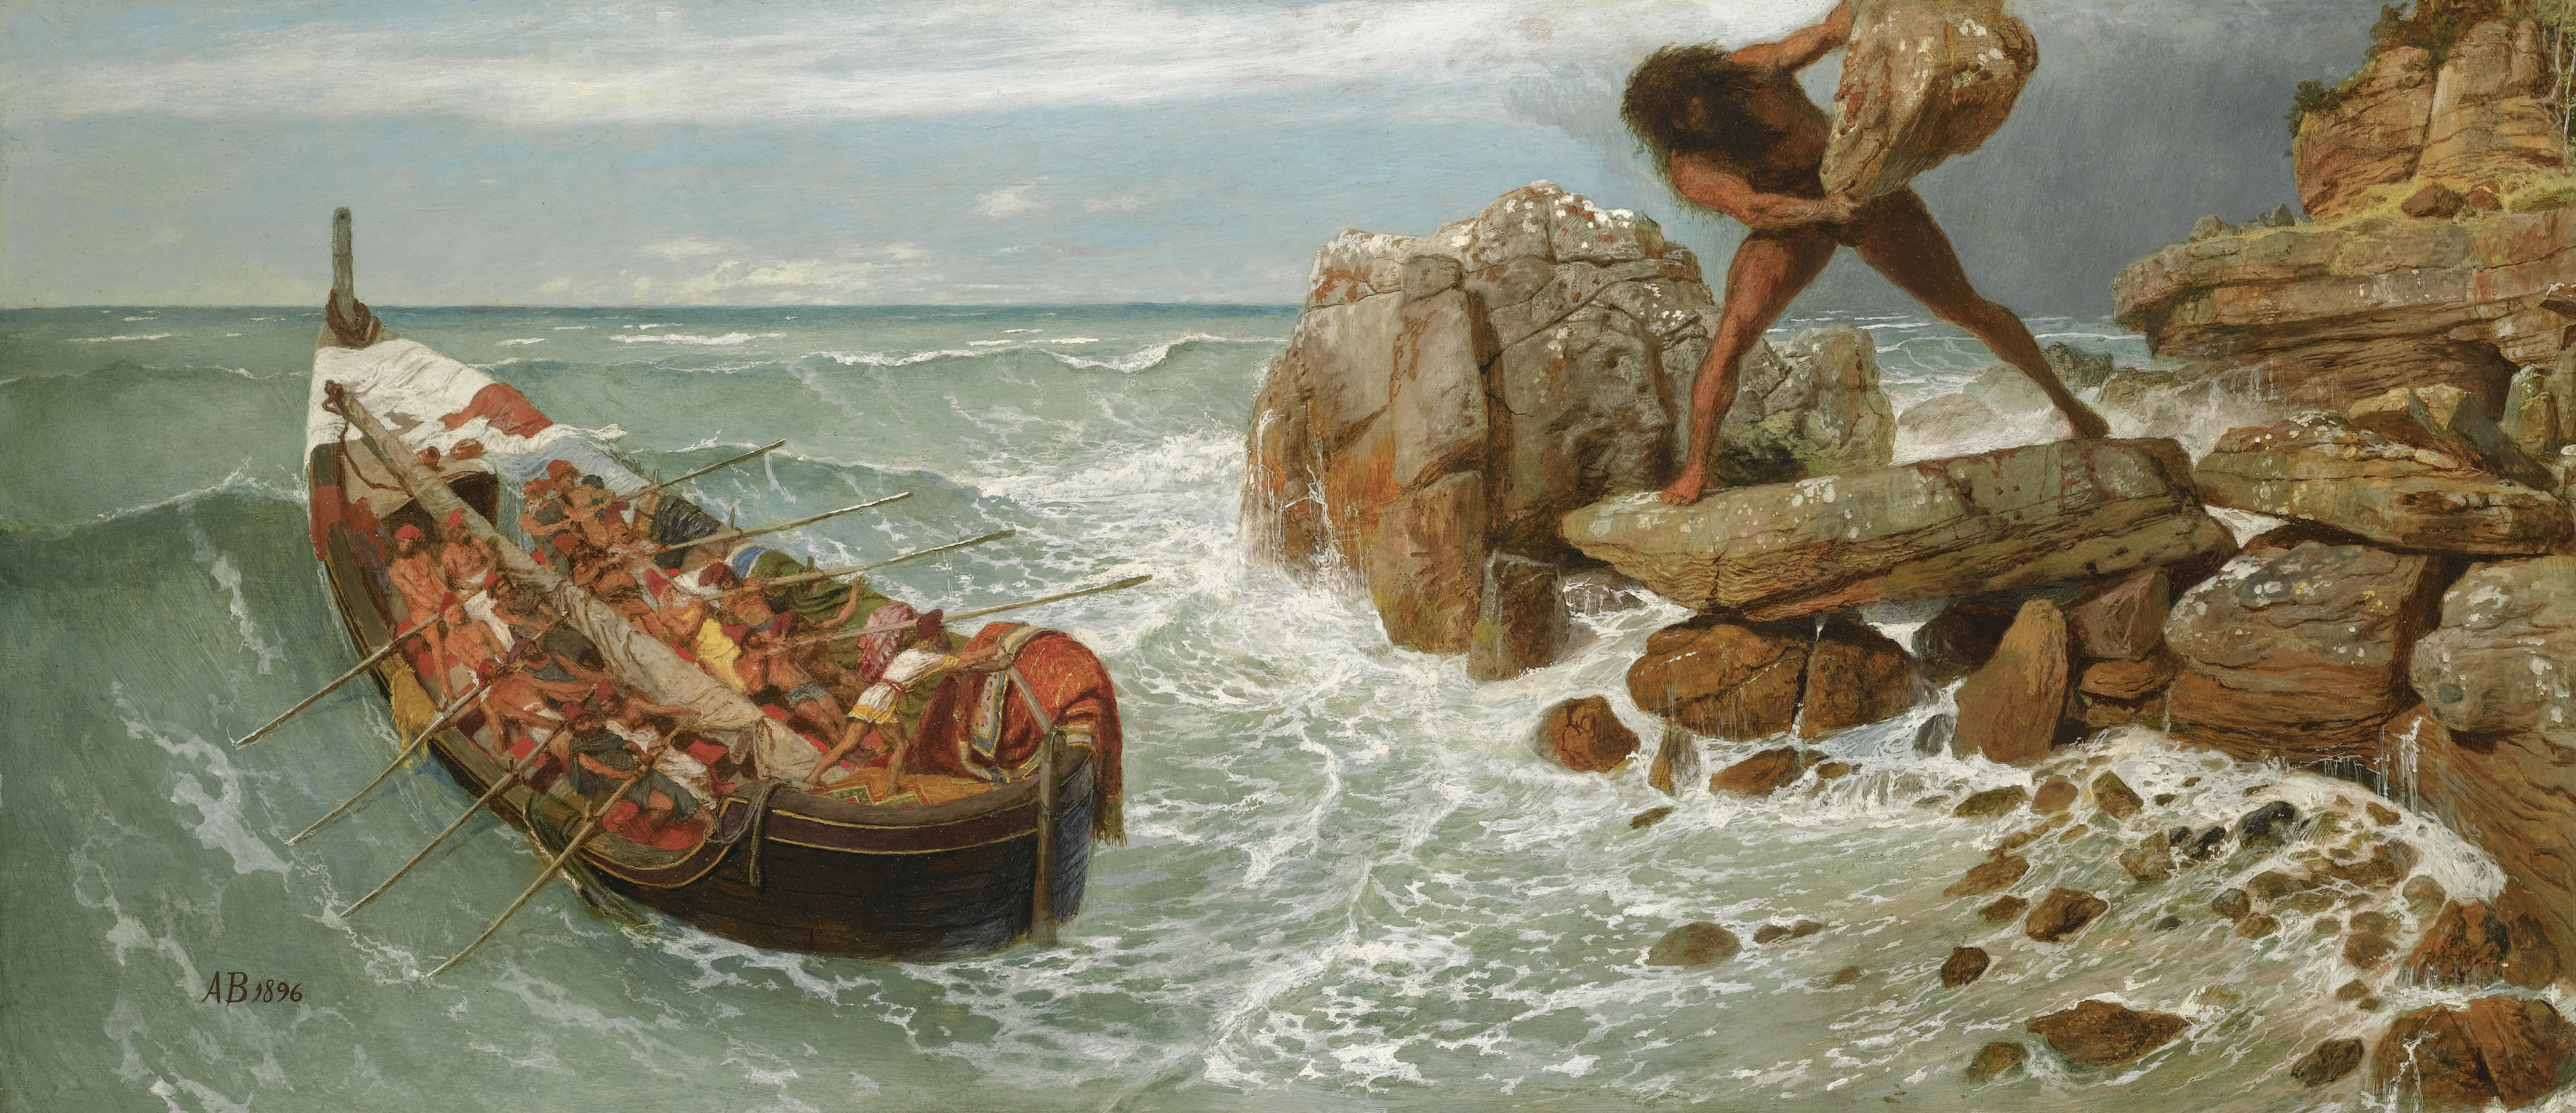 the heroic journey of odysseus Odysseus' journey as an epic hero in the epic poem the odyssey,  a perfect example of someone that underwent the heroic journey is odysseus.